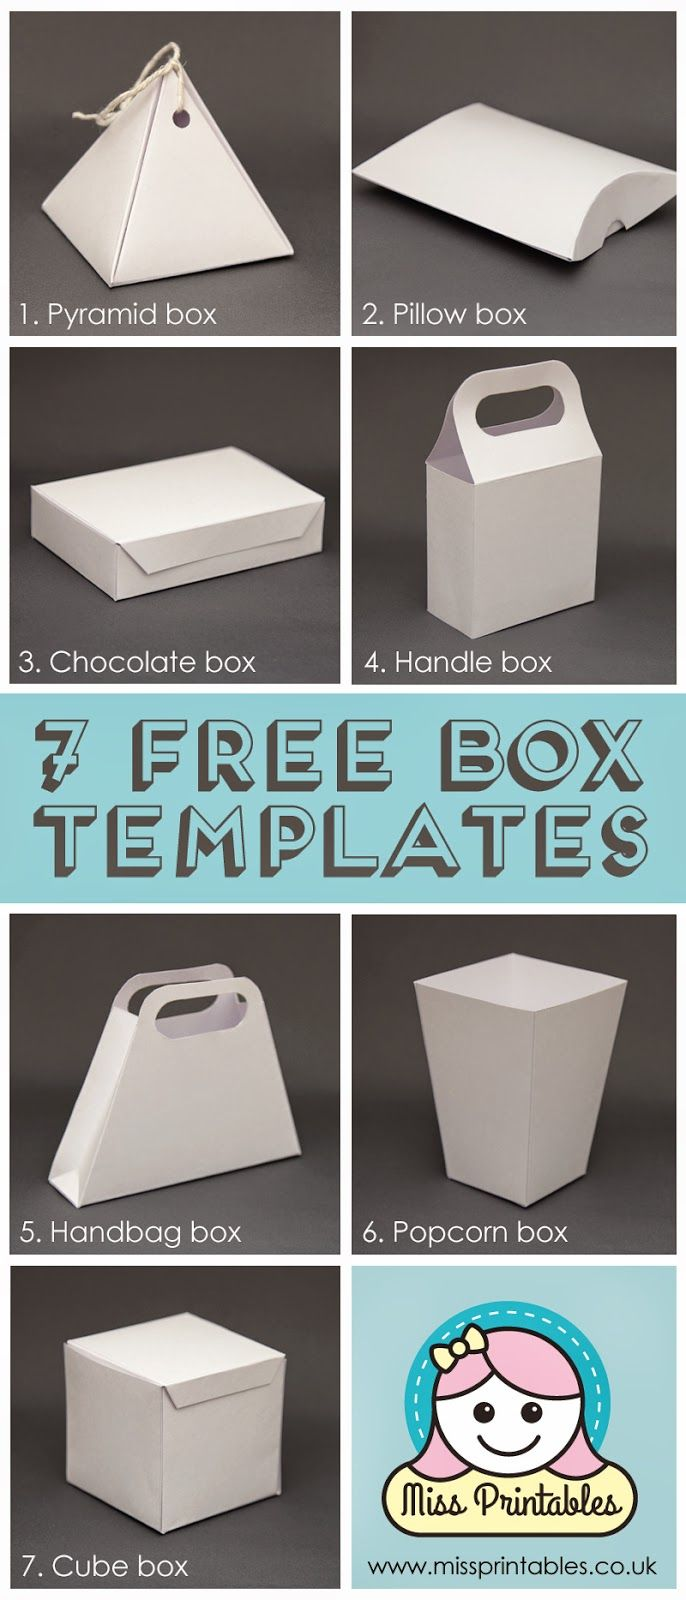 Blank box templates freebie! have fun making these boxes